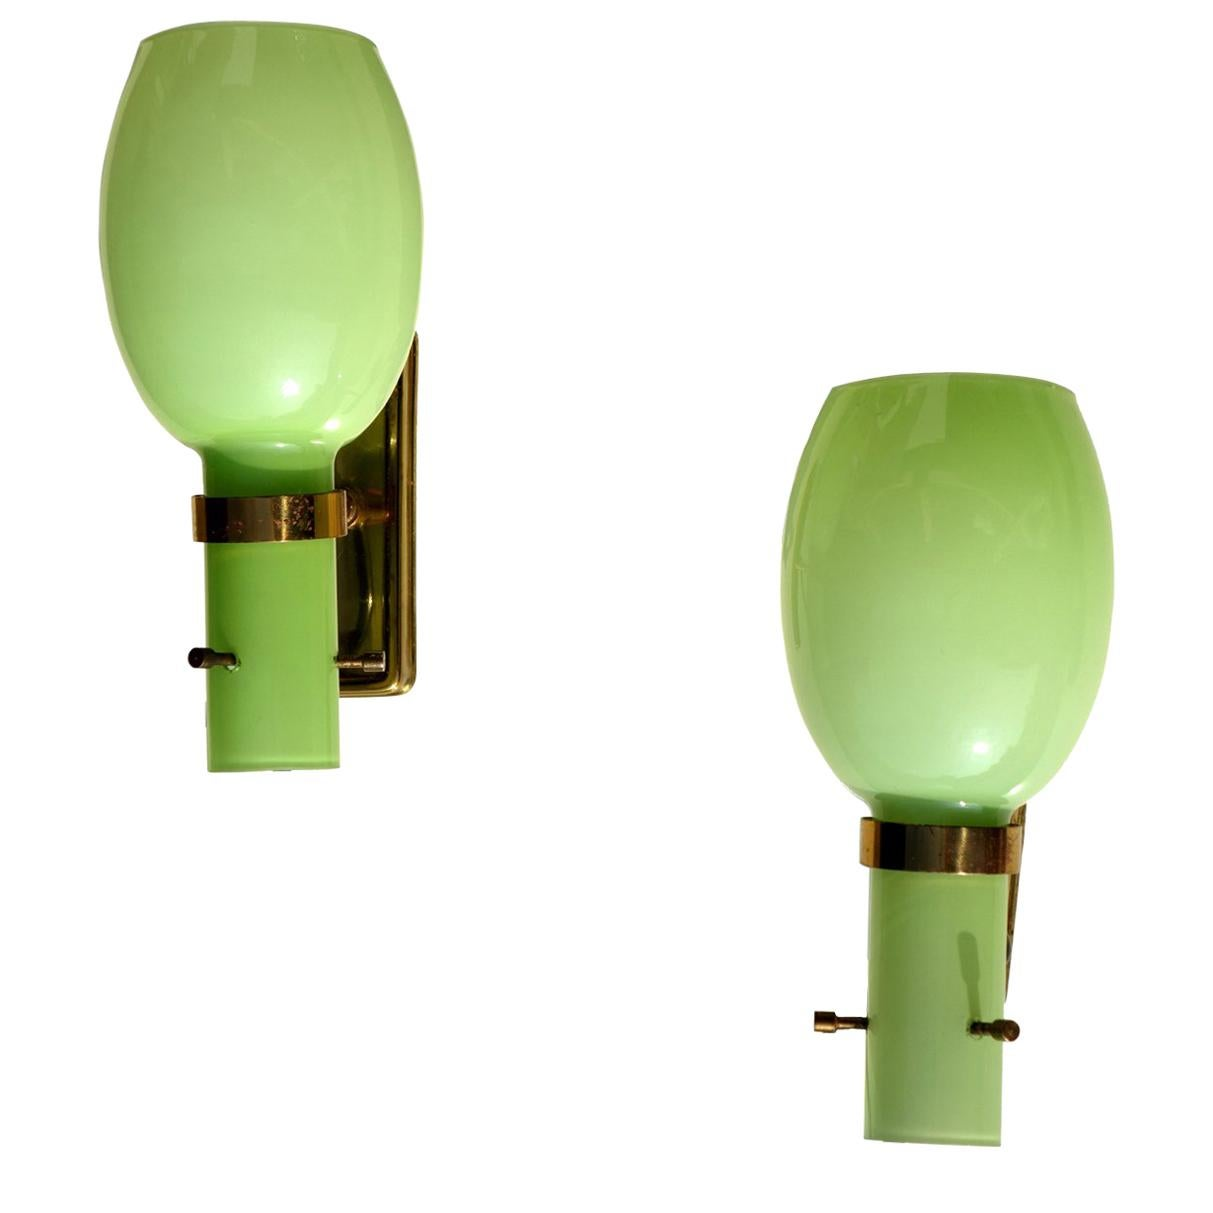 1950s by Stilnovo Italian Midcentury Design Pair of Wall Lamps